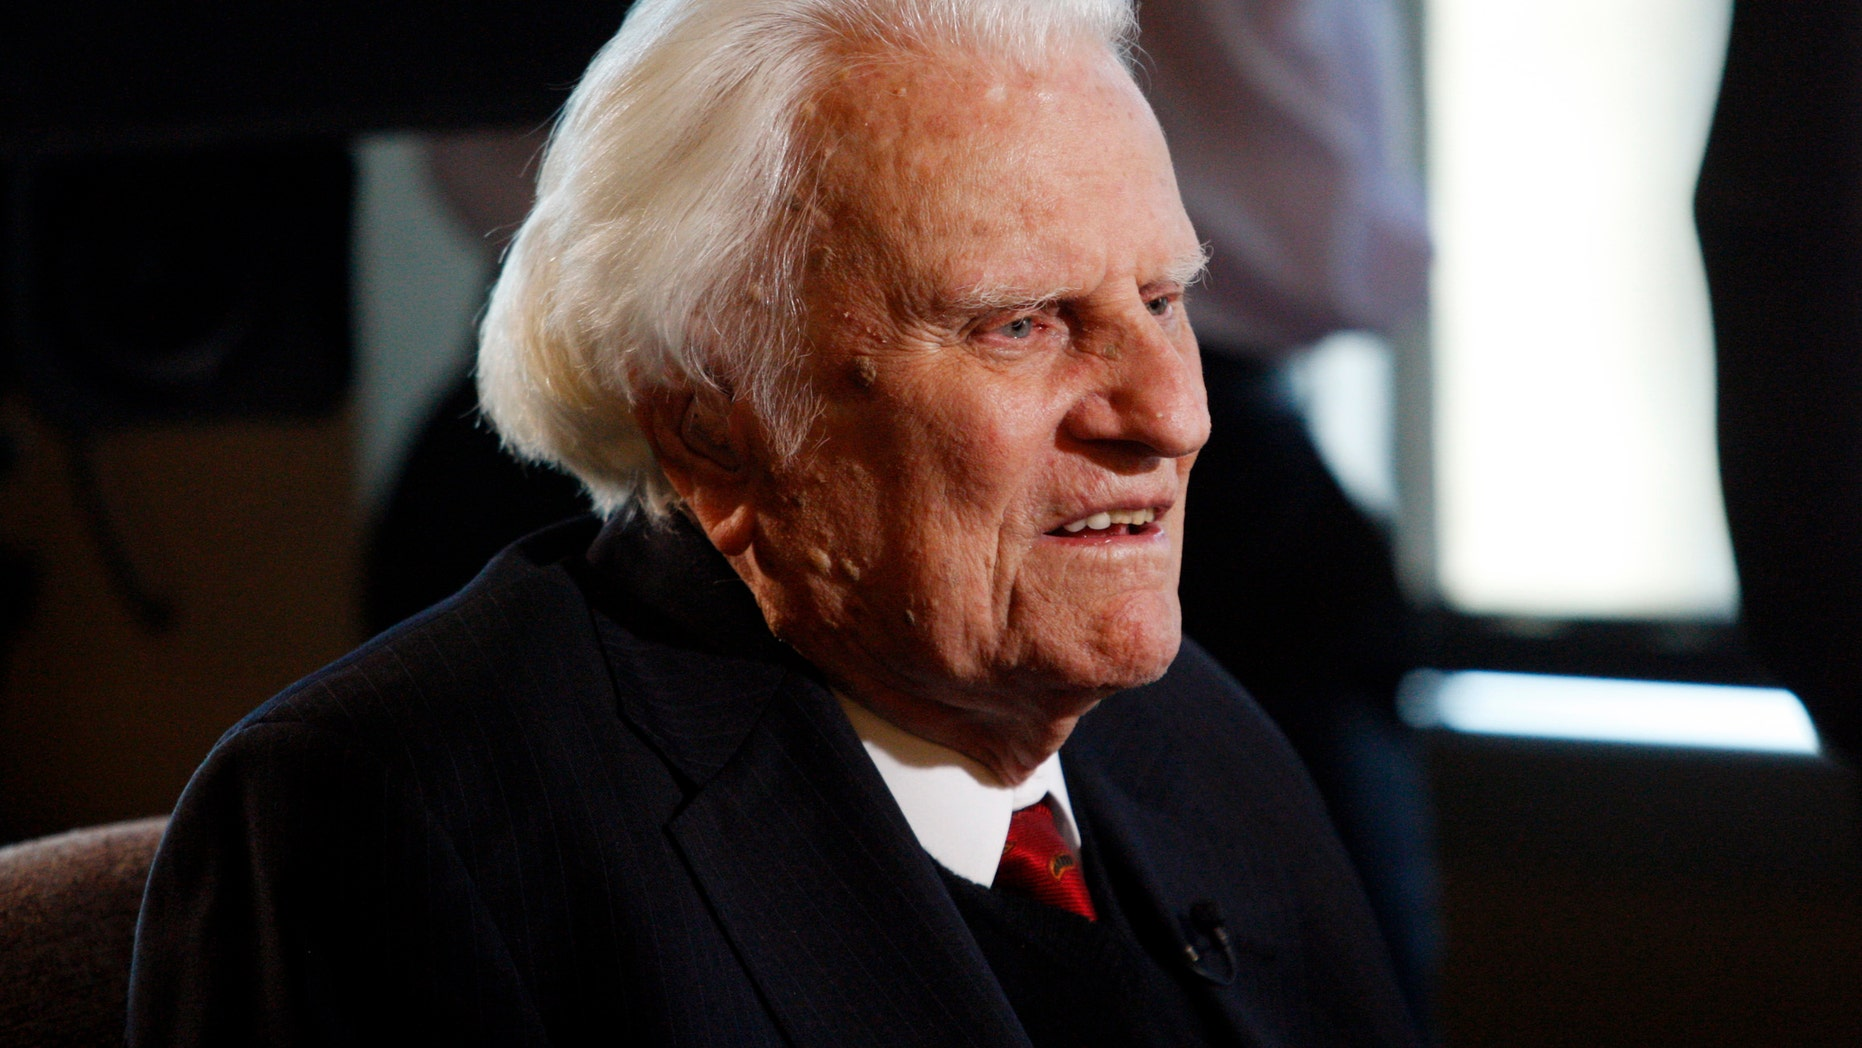 FILE - In this Dec. 20, 2010 file photo, evangelist Billy Graham speaks during an interview at the Billy Graham Evangelistic Association headquarters in Charlotte, N.C. Graham, 95, has returned to his home in Montreat on Thursday, Nov. 21, 2013, after being hospitalized for pulmonary-related tests and observation. (AP Photo/Nell Redmond, File)